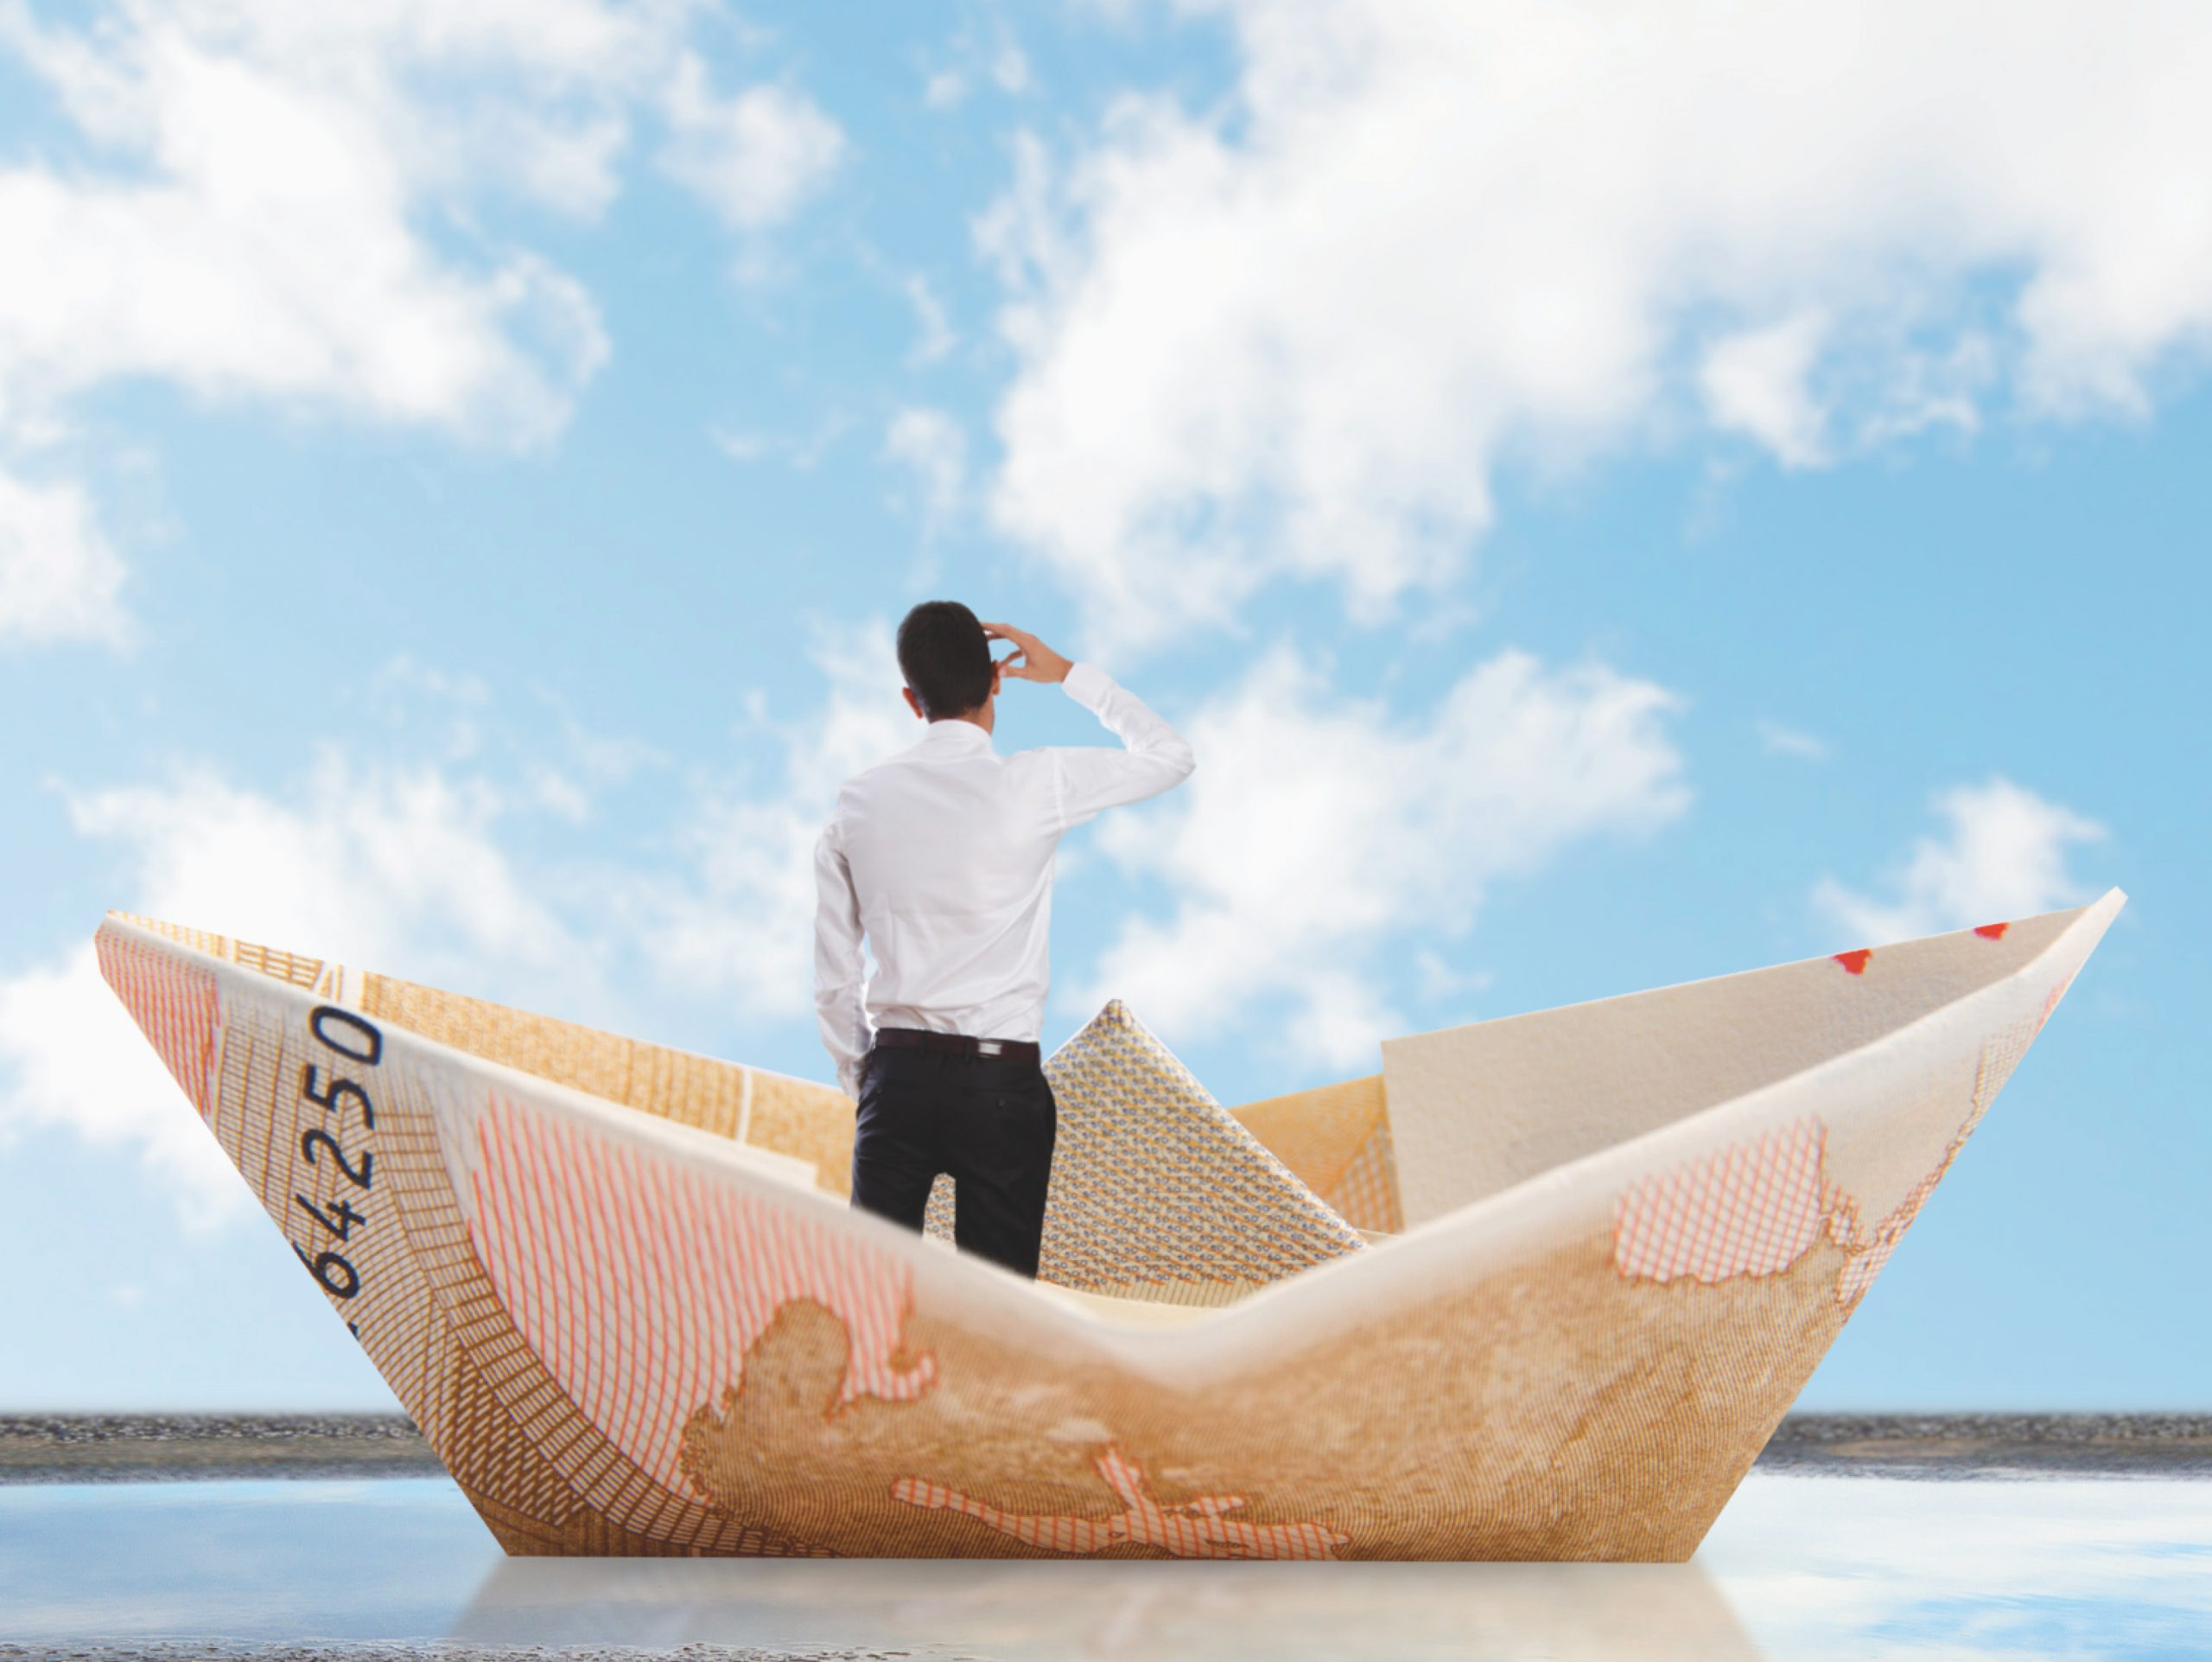 Six financial lessons for contractors from COVID-19